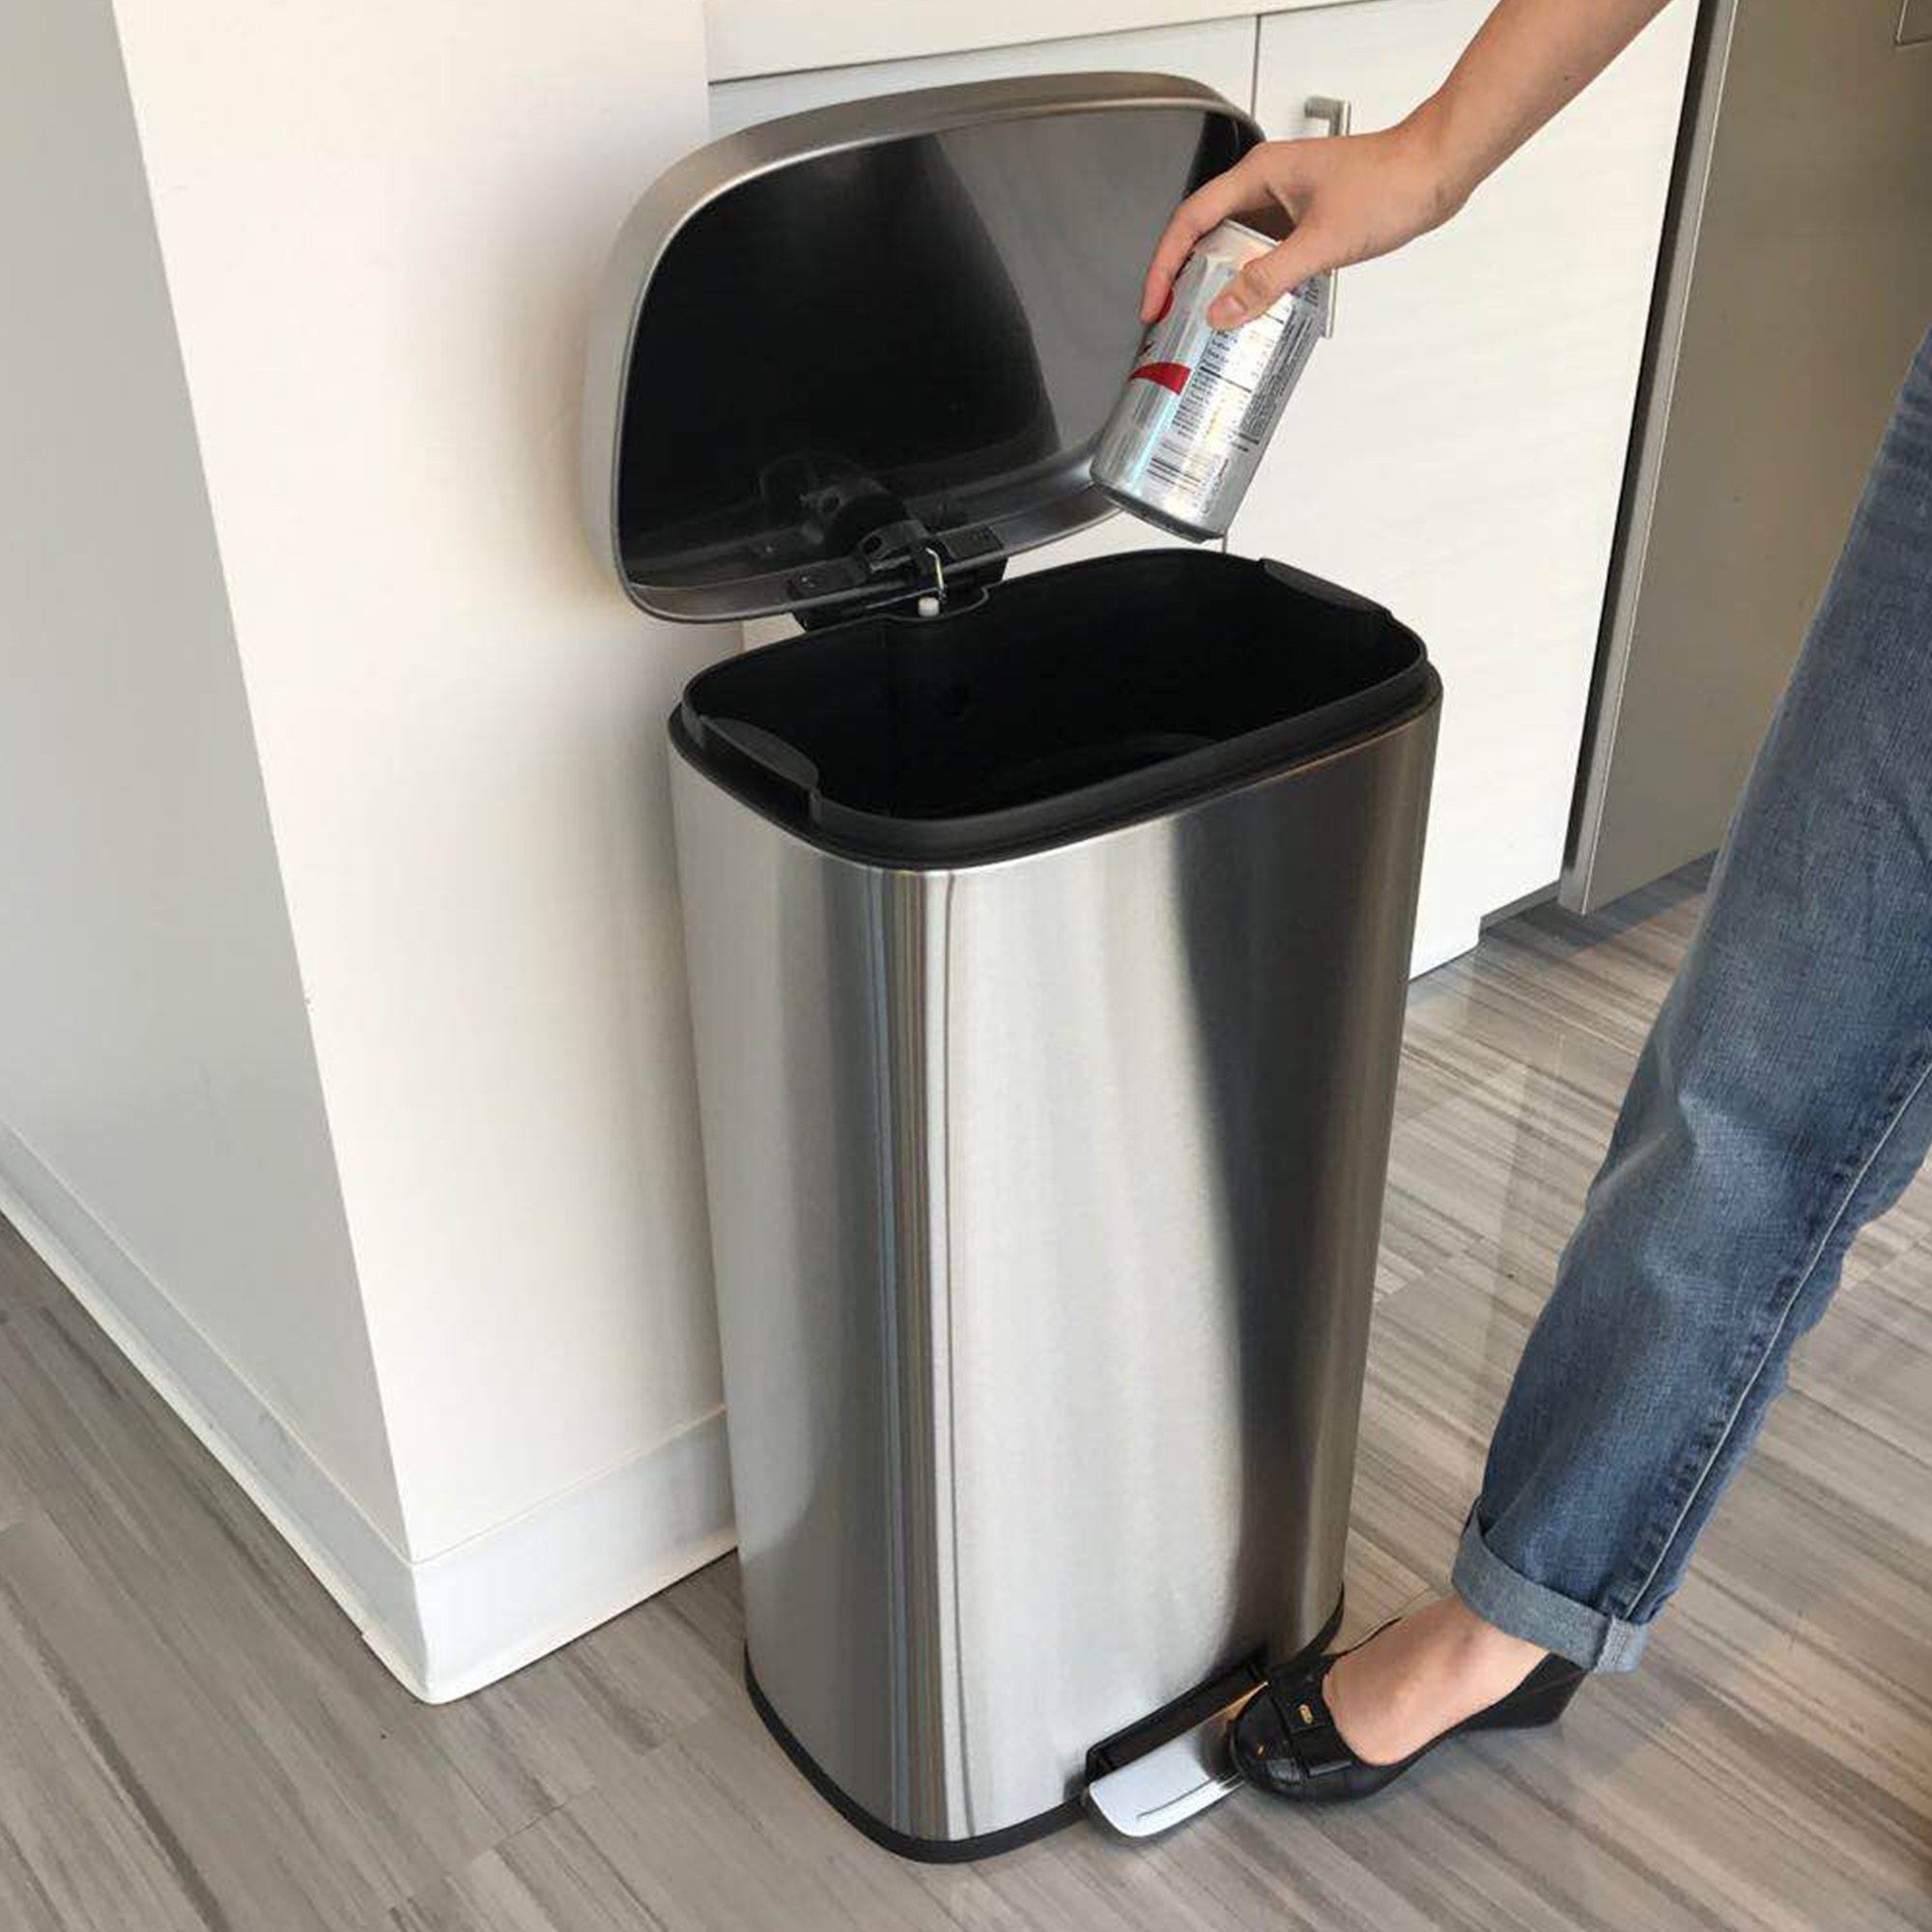 iTouchless SoftStep 8 Gallon Stainless Steel Step Trash Can, 30 Liter Pedal Kitchen Trash Can Perfect for Office, Home and Kitchen by iTouchless (Image #5)